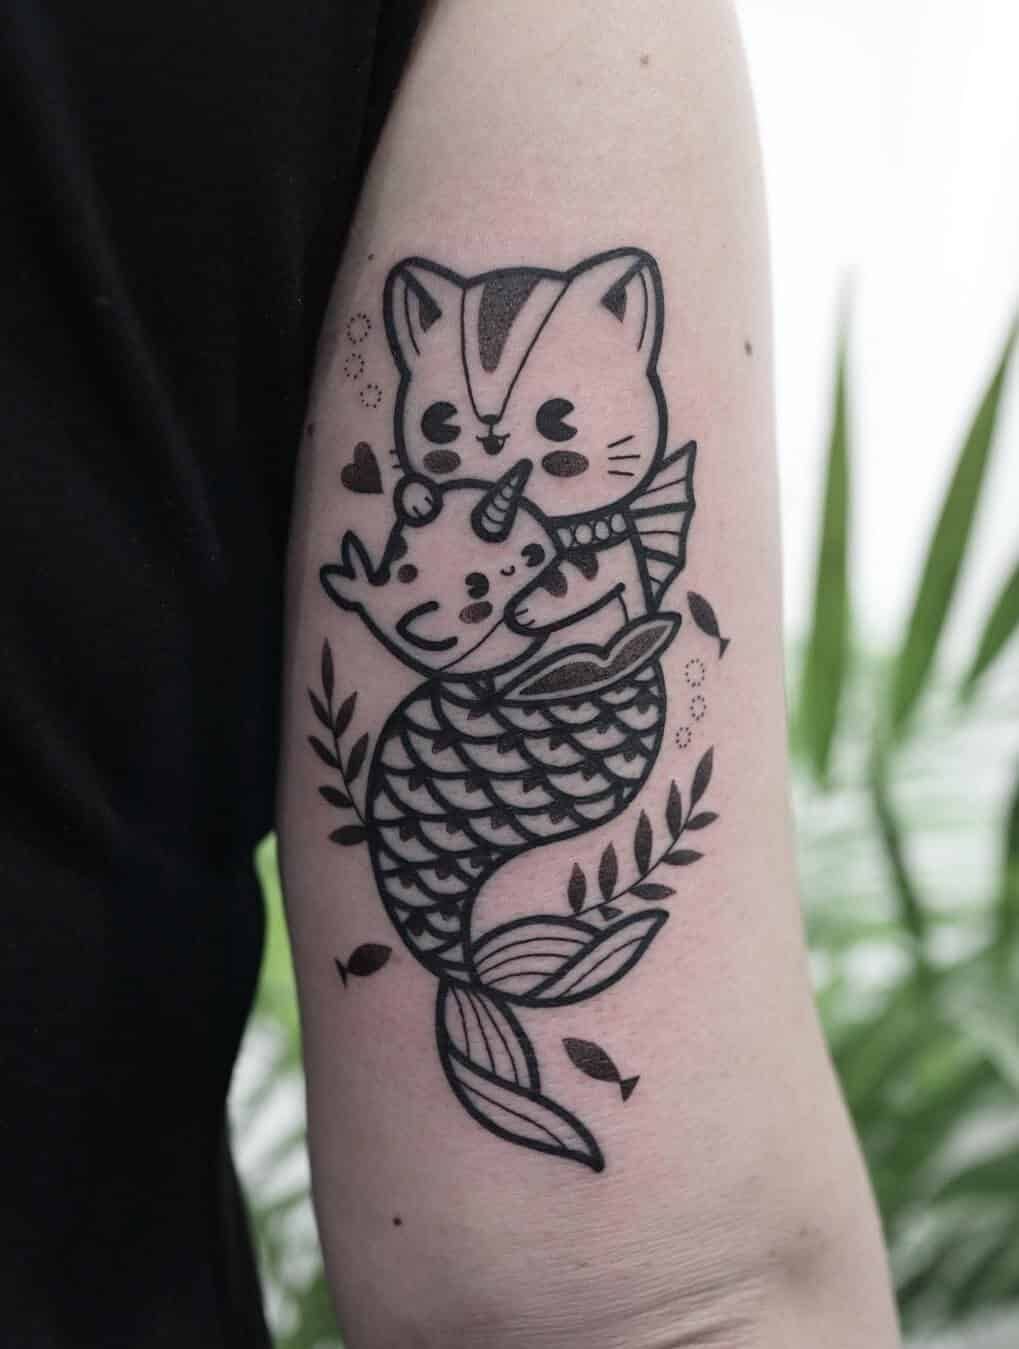 tattoo cute tattoos designs tattooer hugo anime ninjacosmico totoro source unique explore